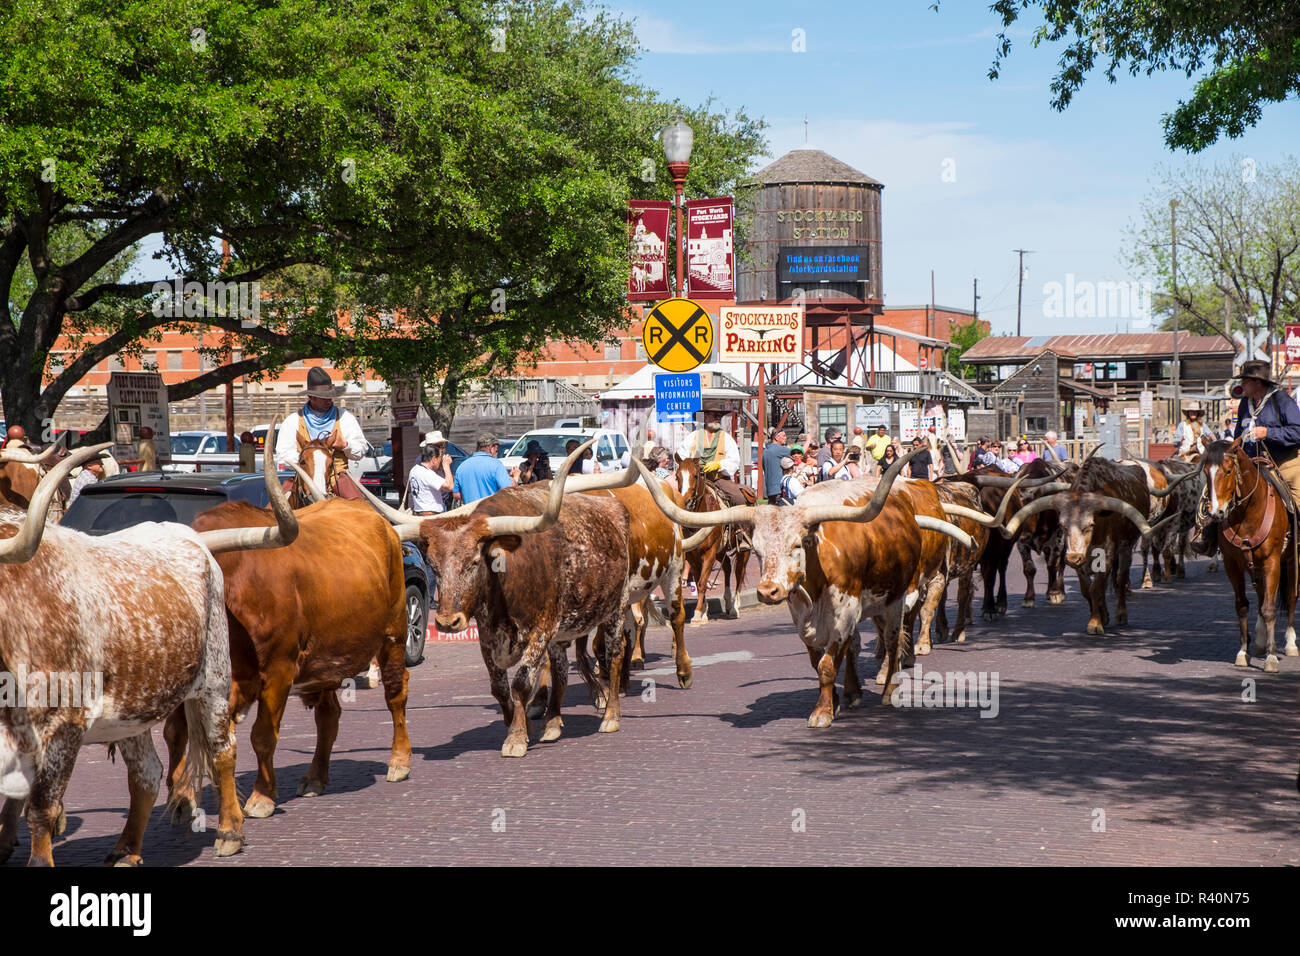 Usa Texas Fort Worth Stockyards Cattle Drive Stock Photo Alamy